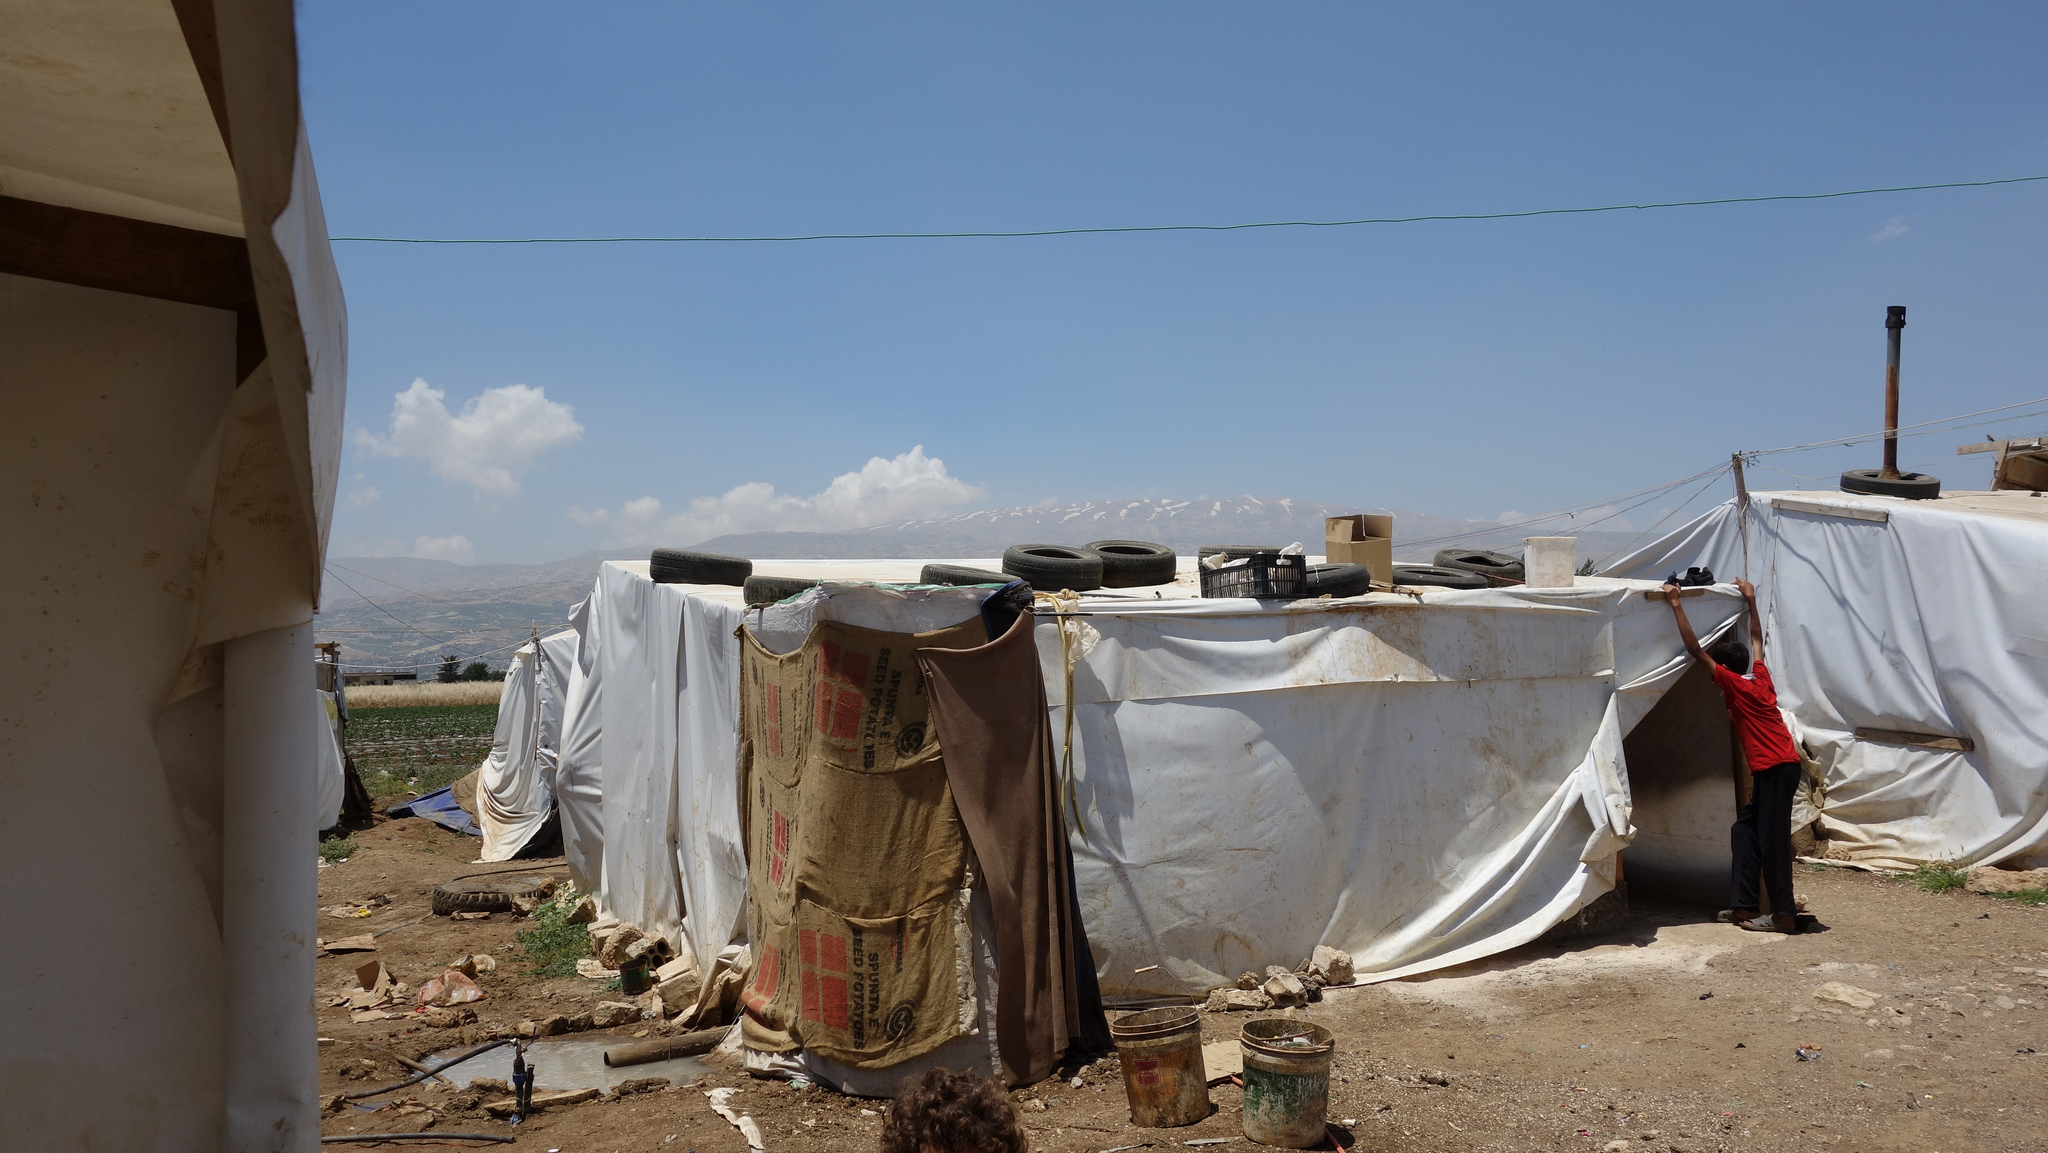 Lebanon's lockdown means more suffering for refugees